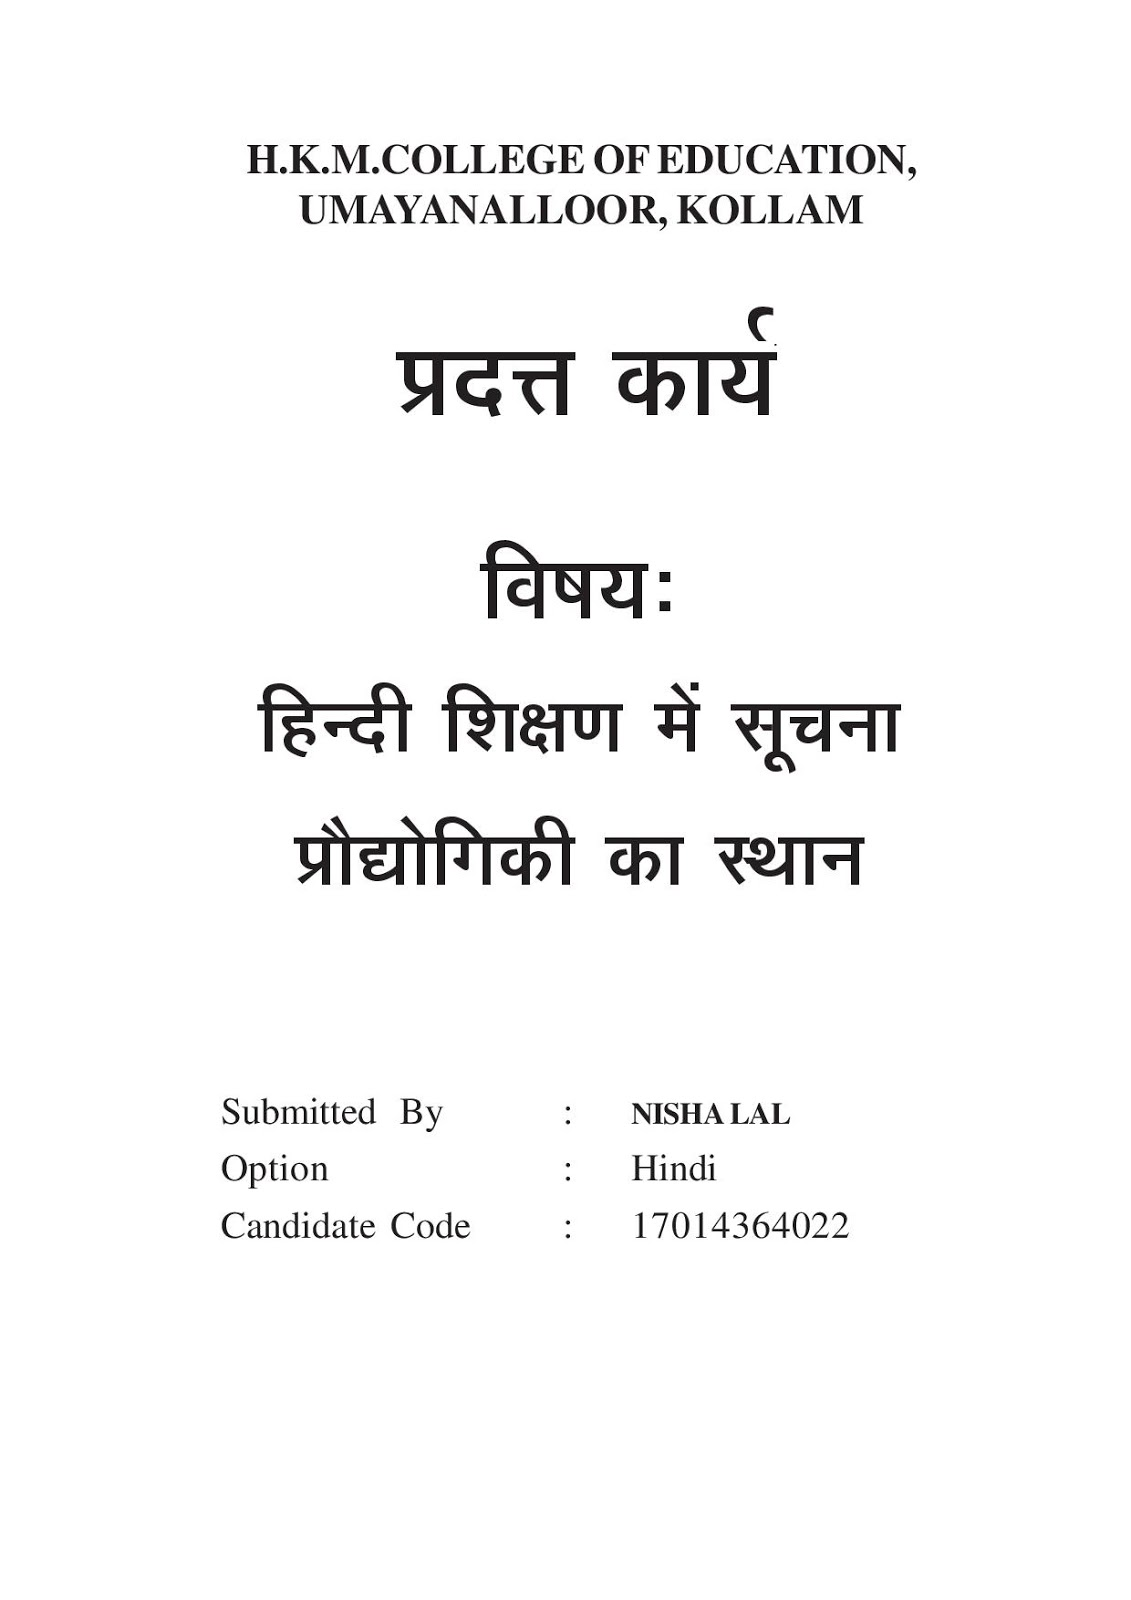 blog created by nishalal hindi option hkm college of education online assignment